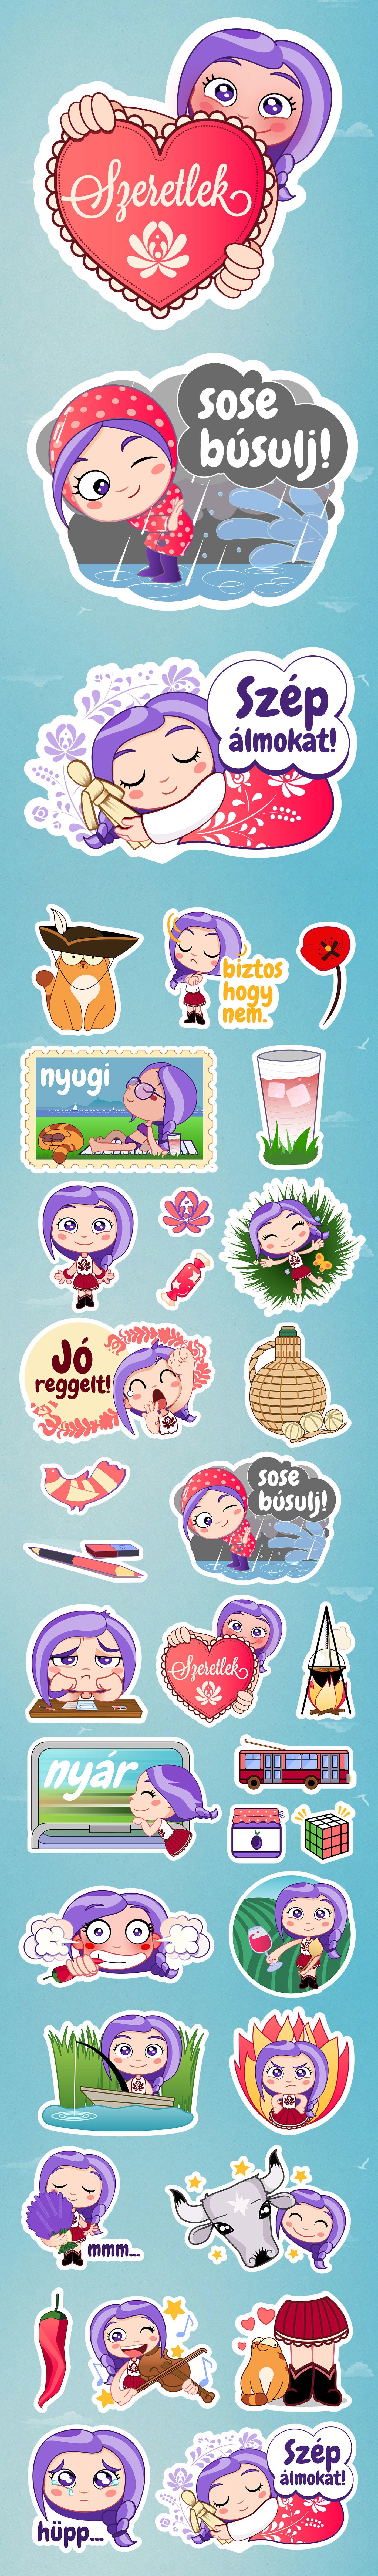 Viber sticker pack - 1 by stratyap